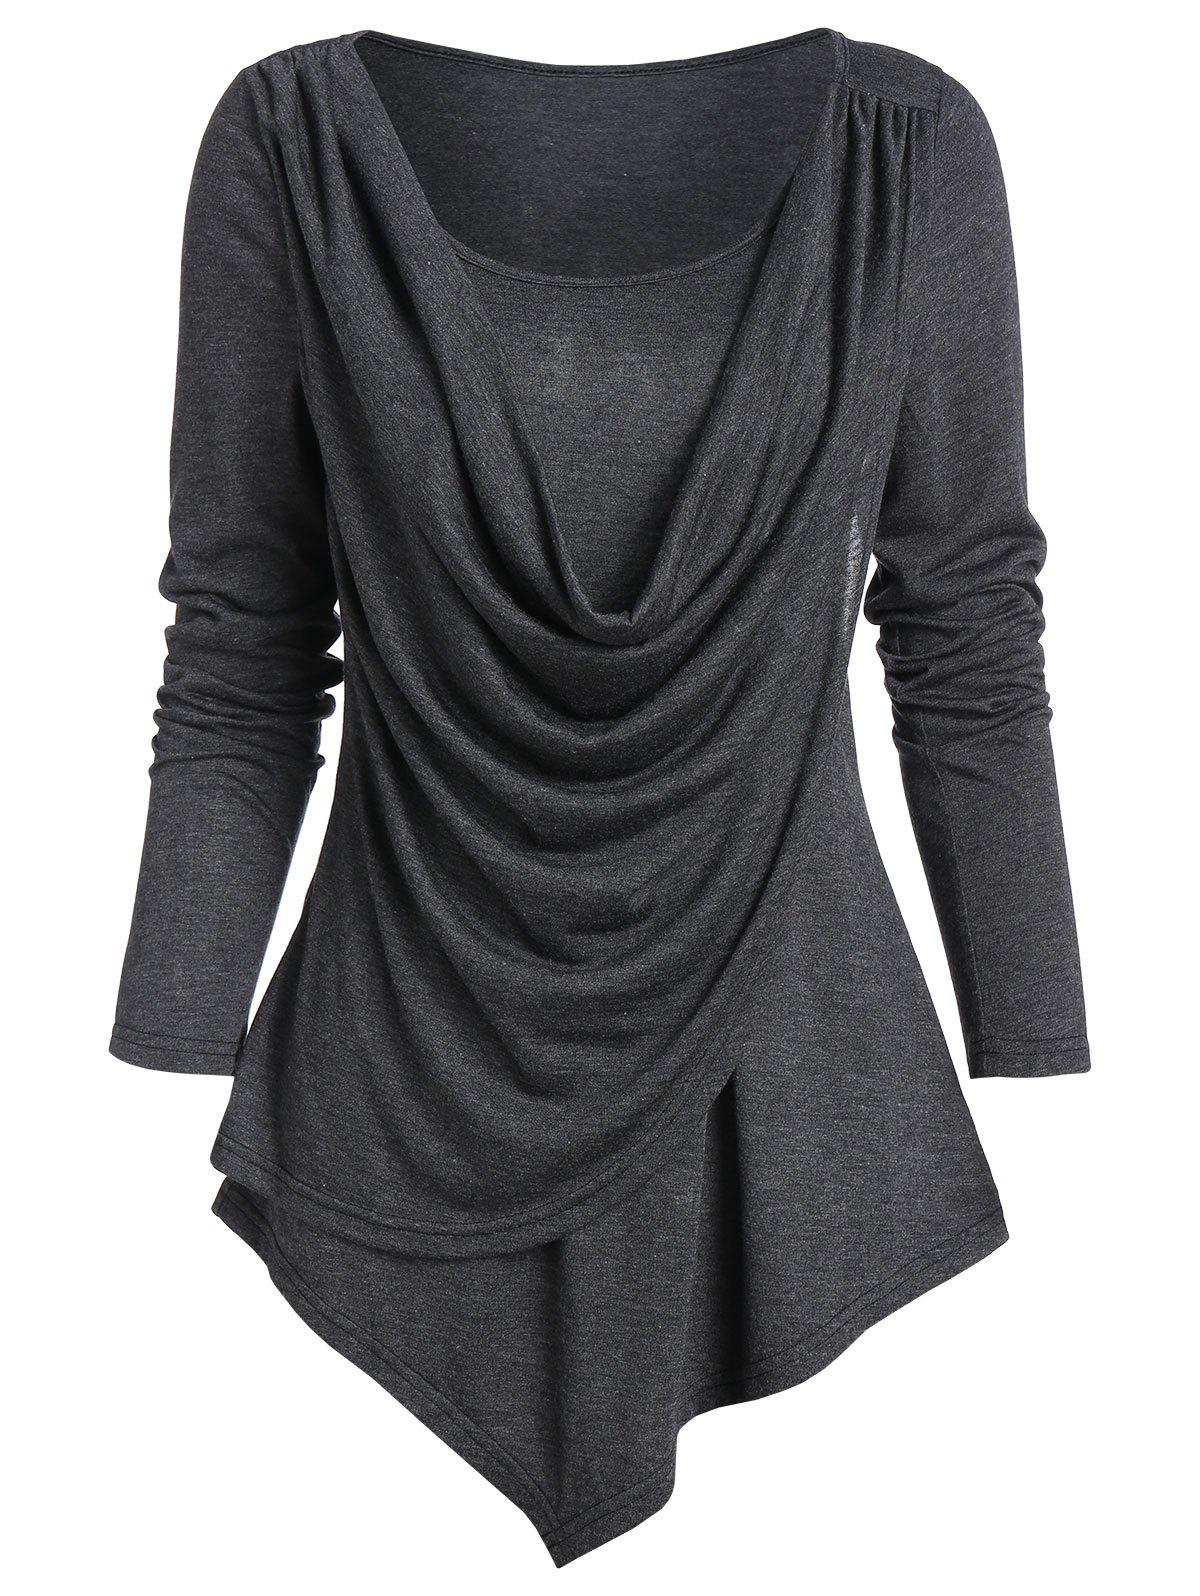 Pointed Hem Heathered Draped Overlap T-shirt - DARK GRAY XL